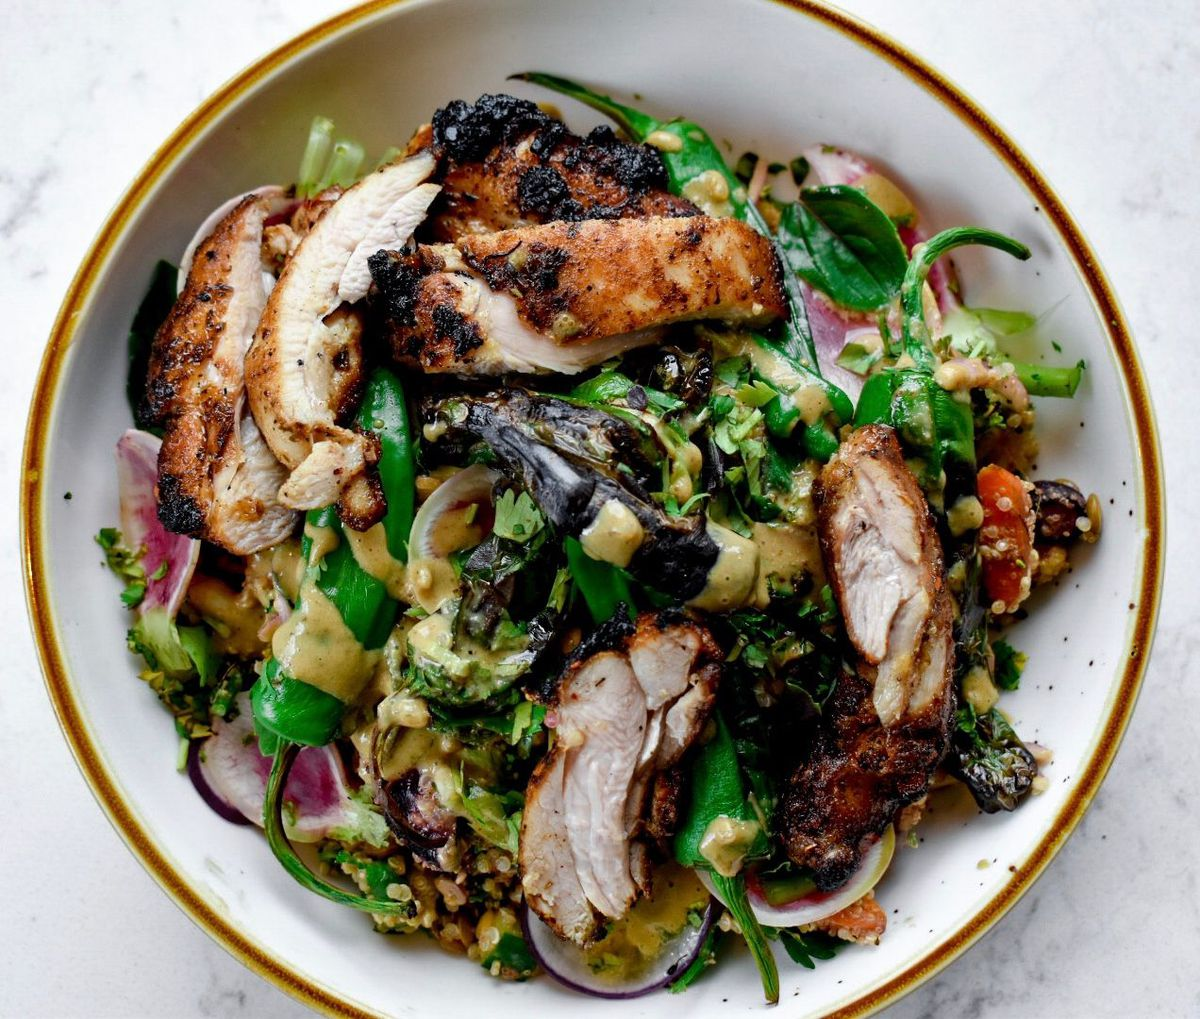 Grain bowl with grilled chicken